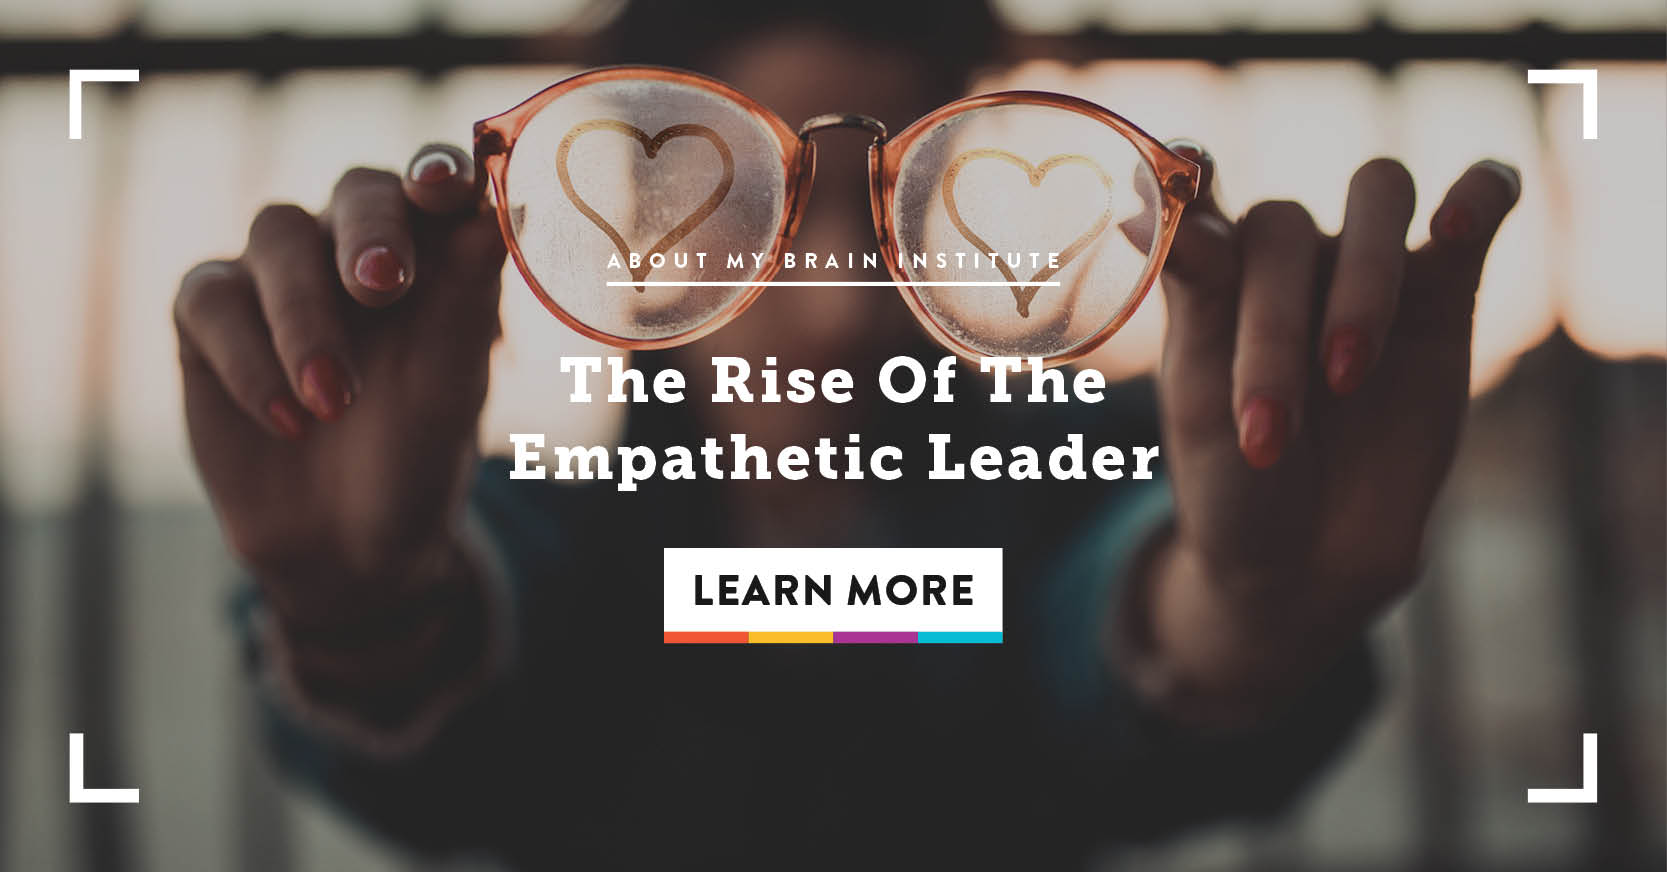 The Rise Of The Empathetic Leader